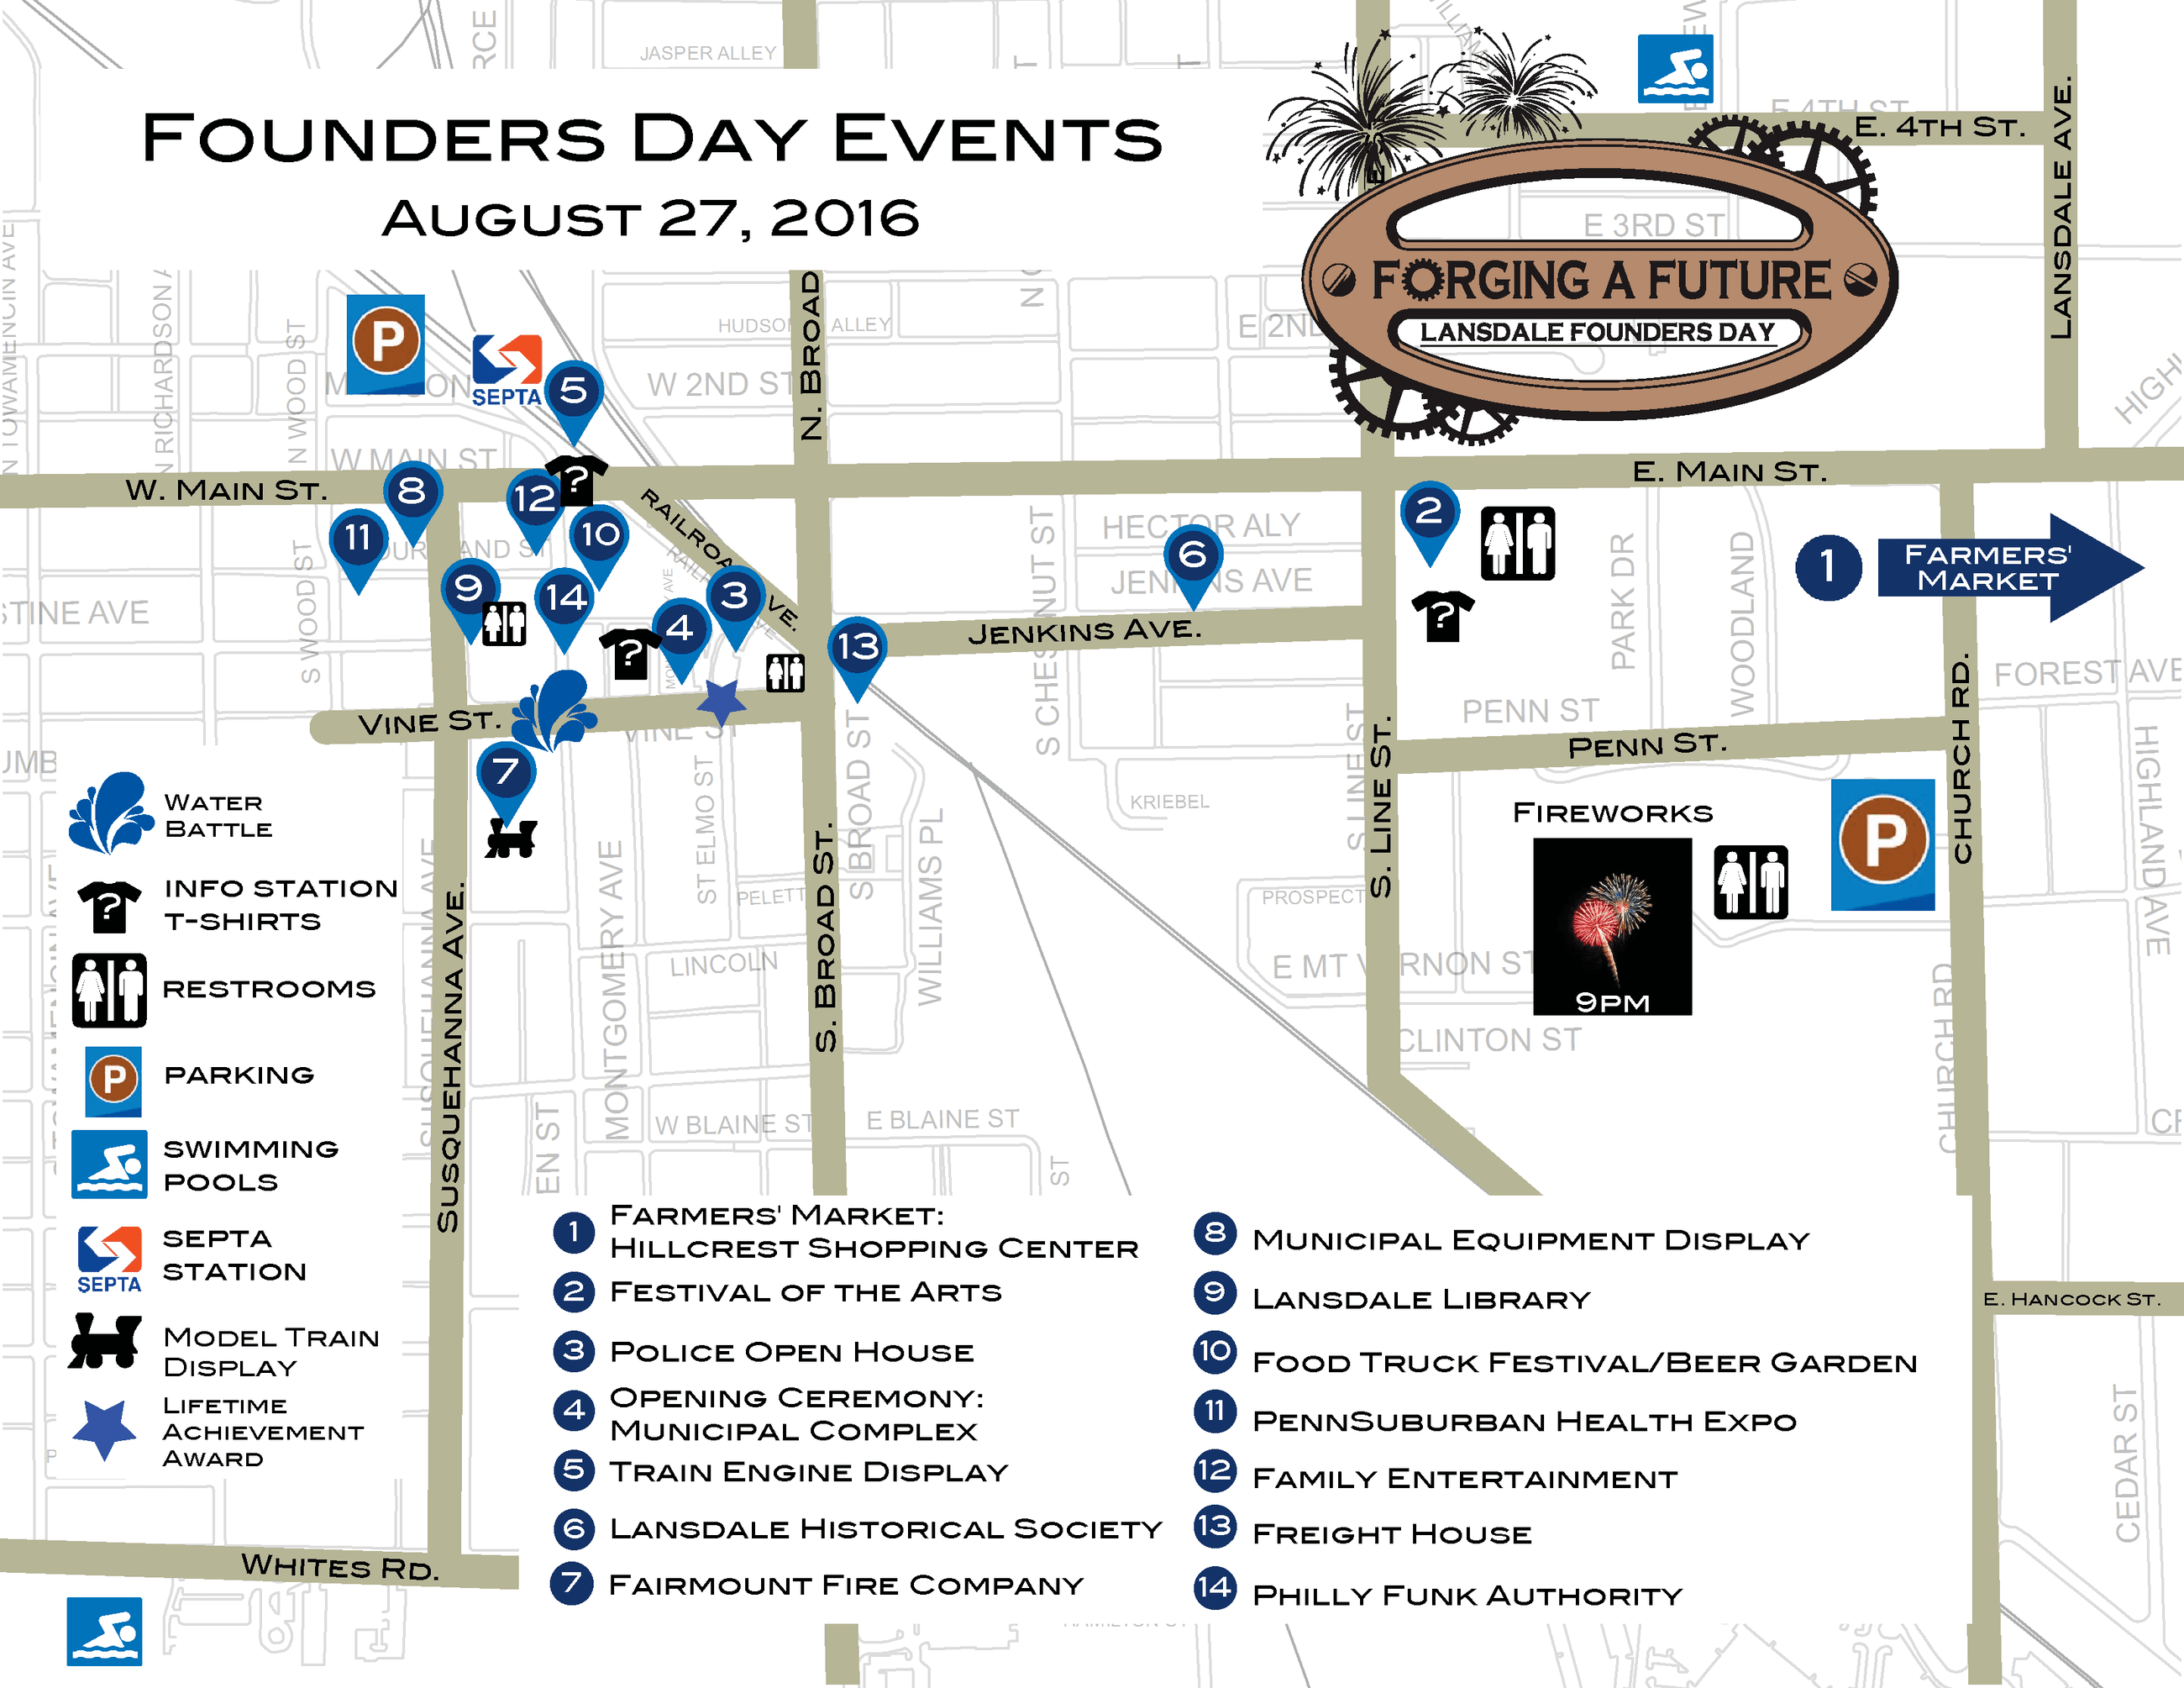 Map of events